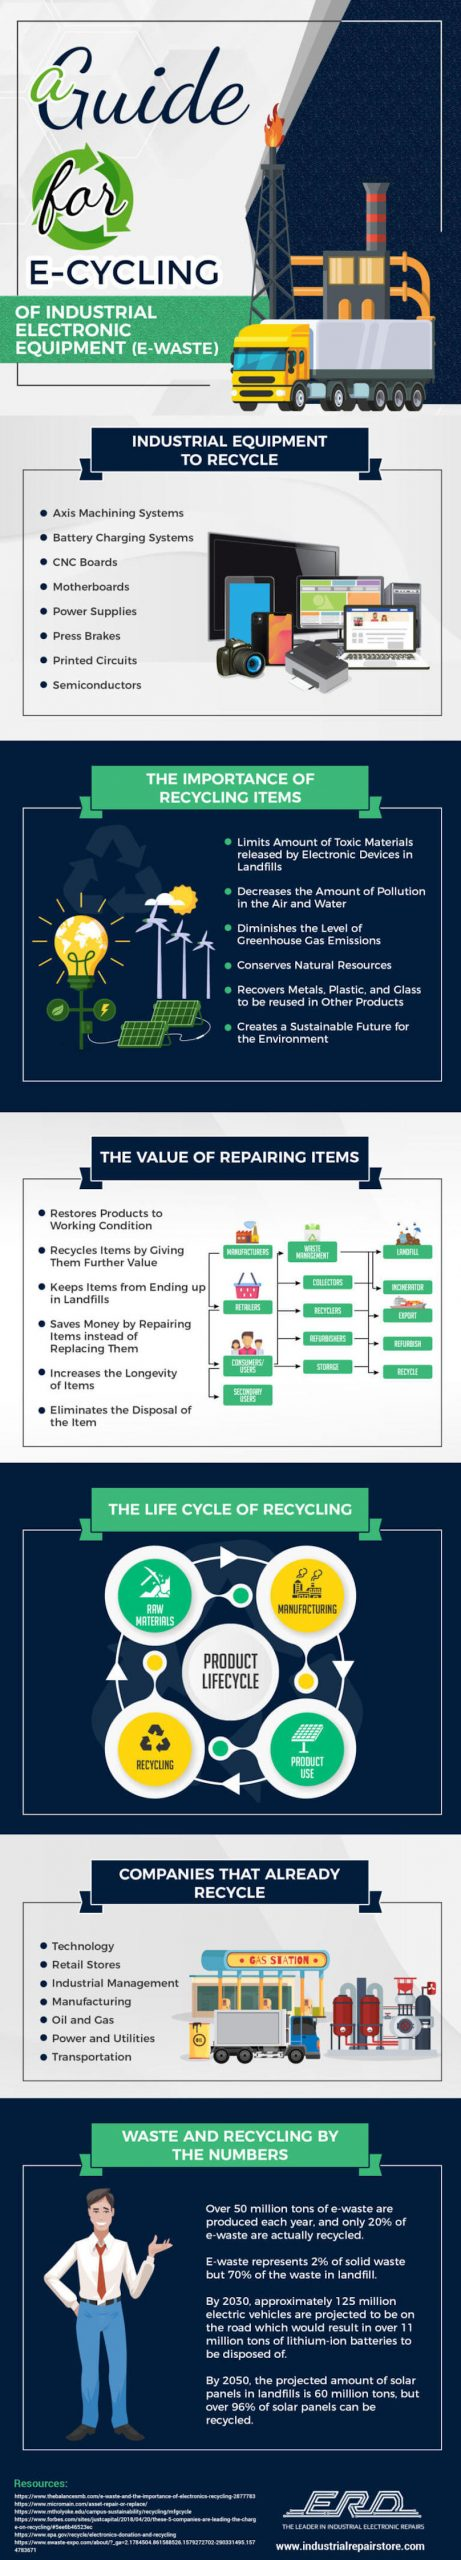 a guide for recycling electronics infographic